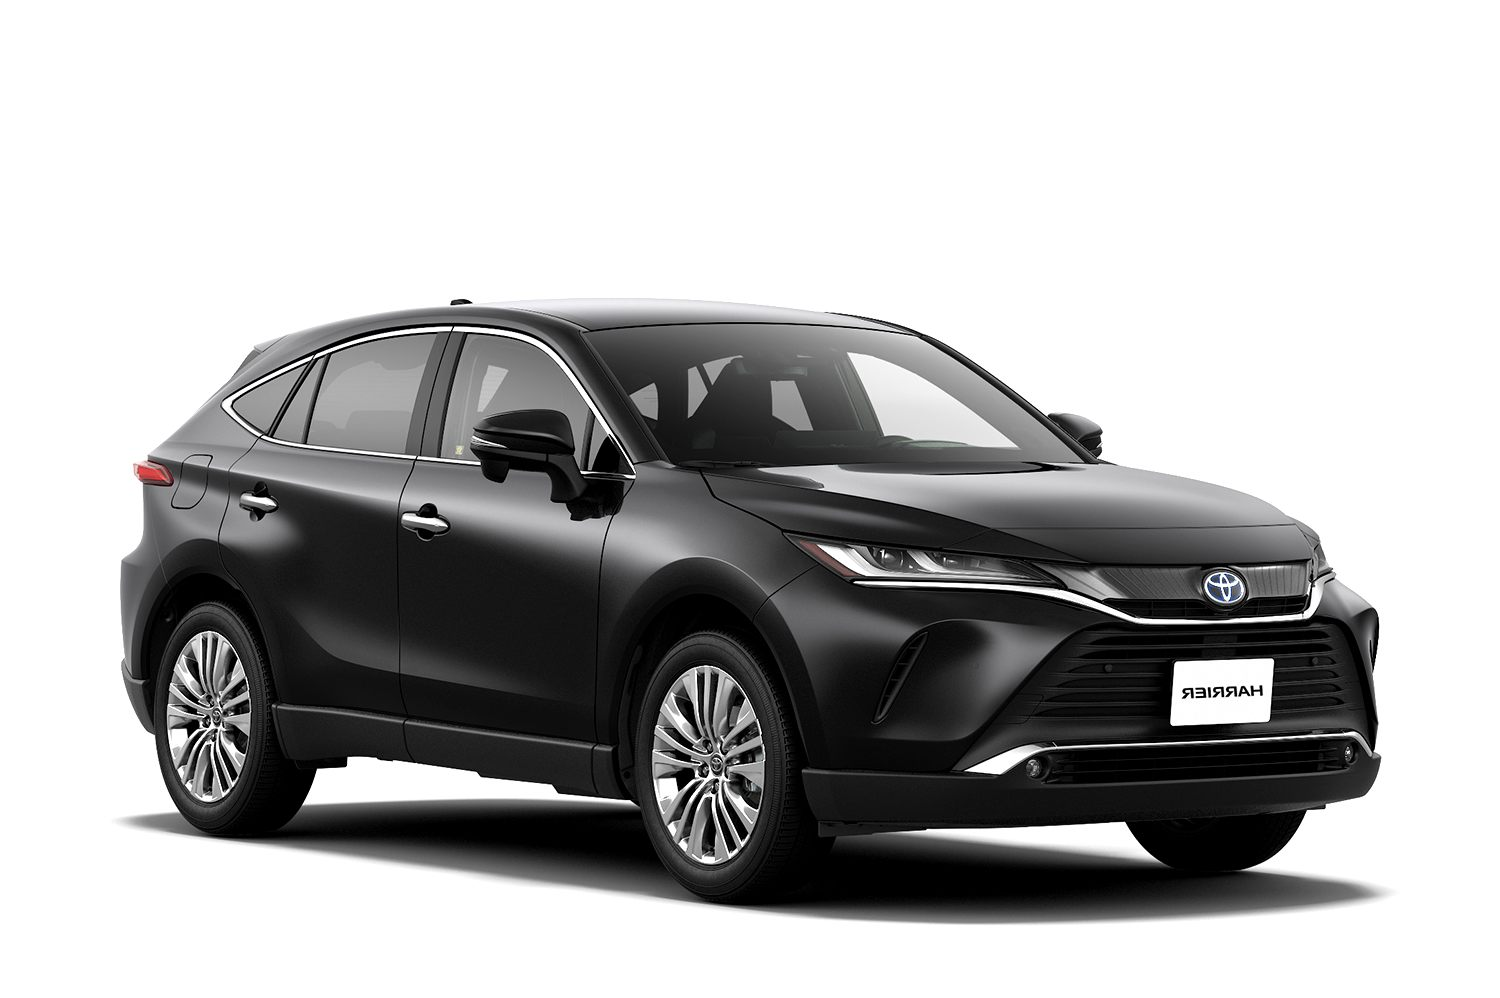 2020 toyota harrier Research New